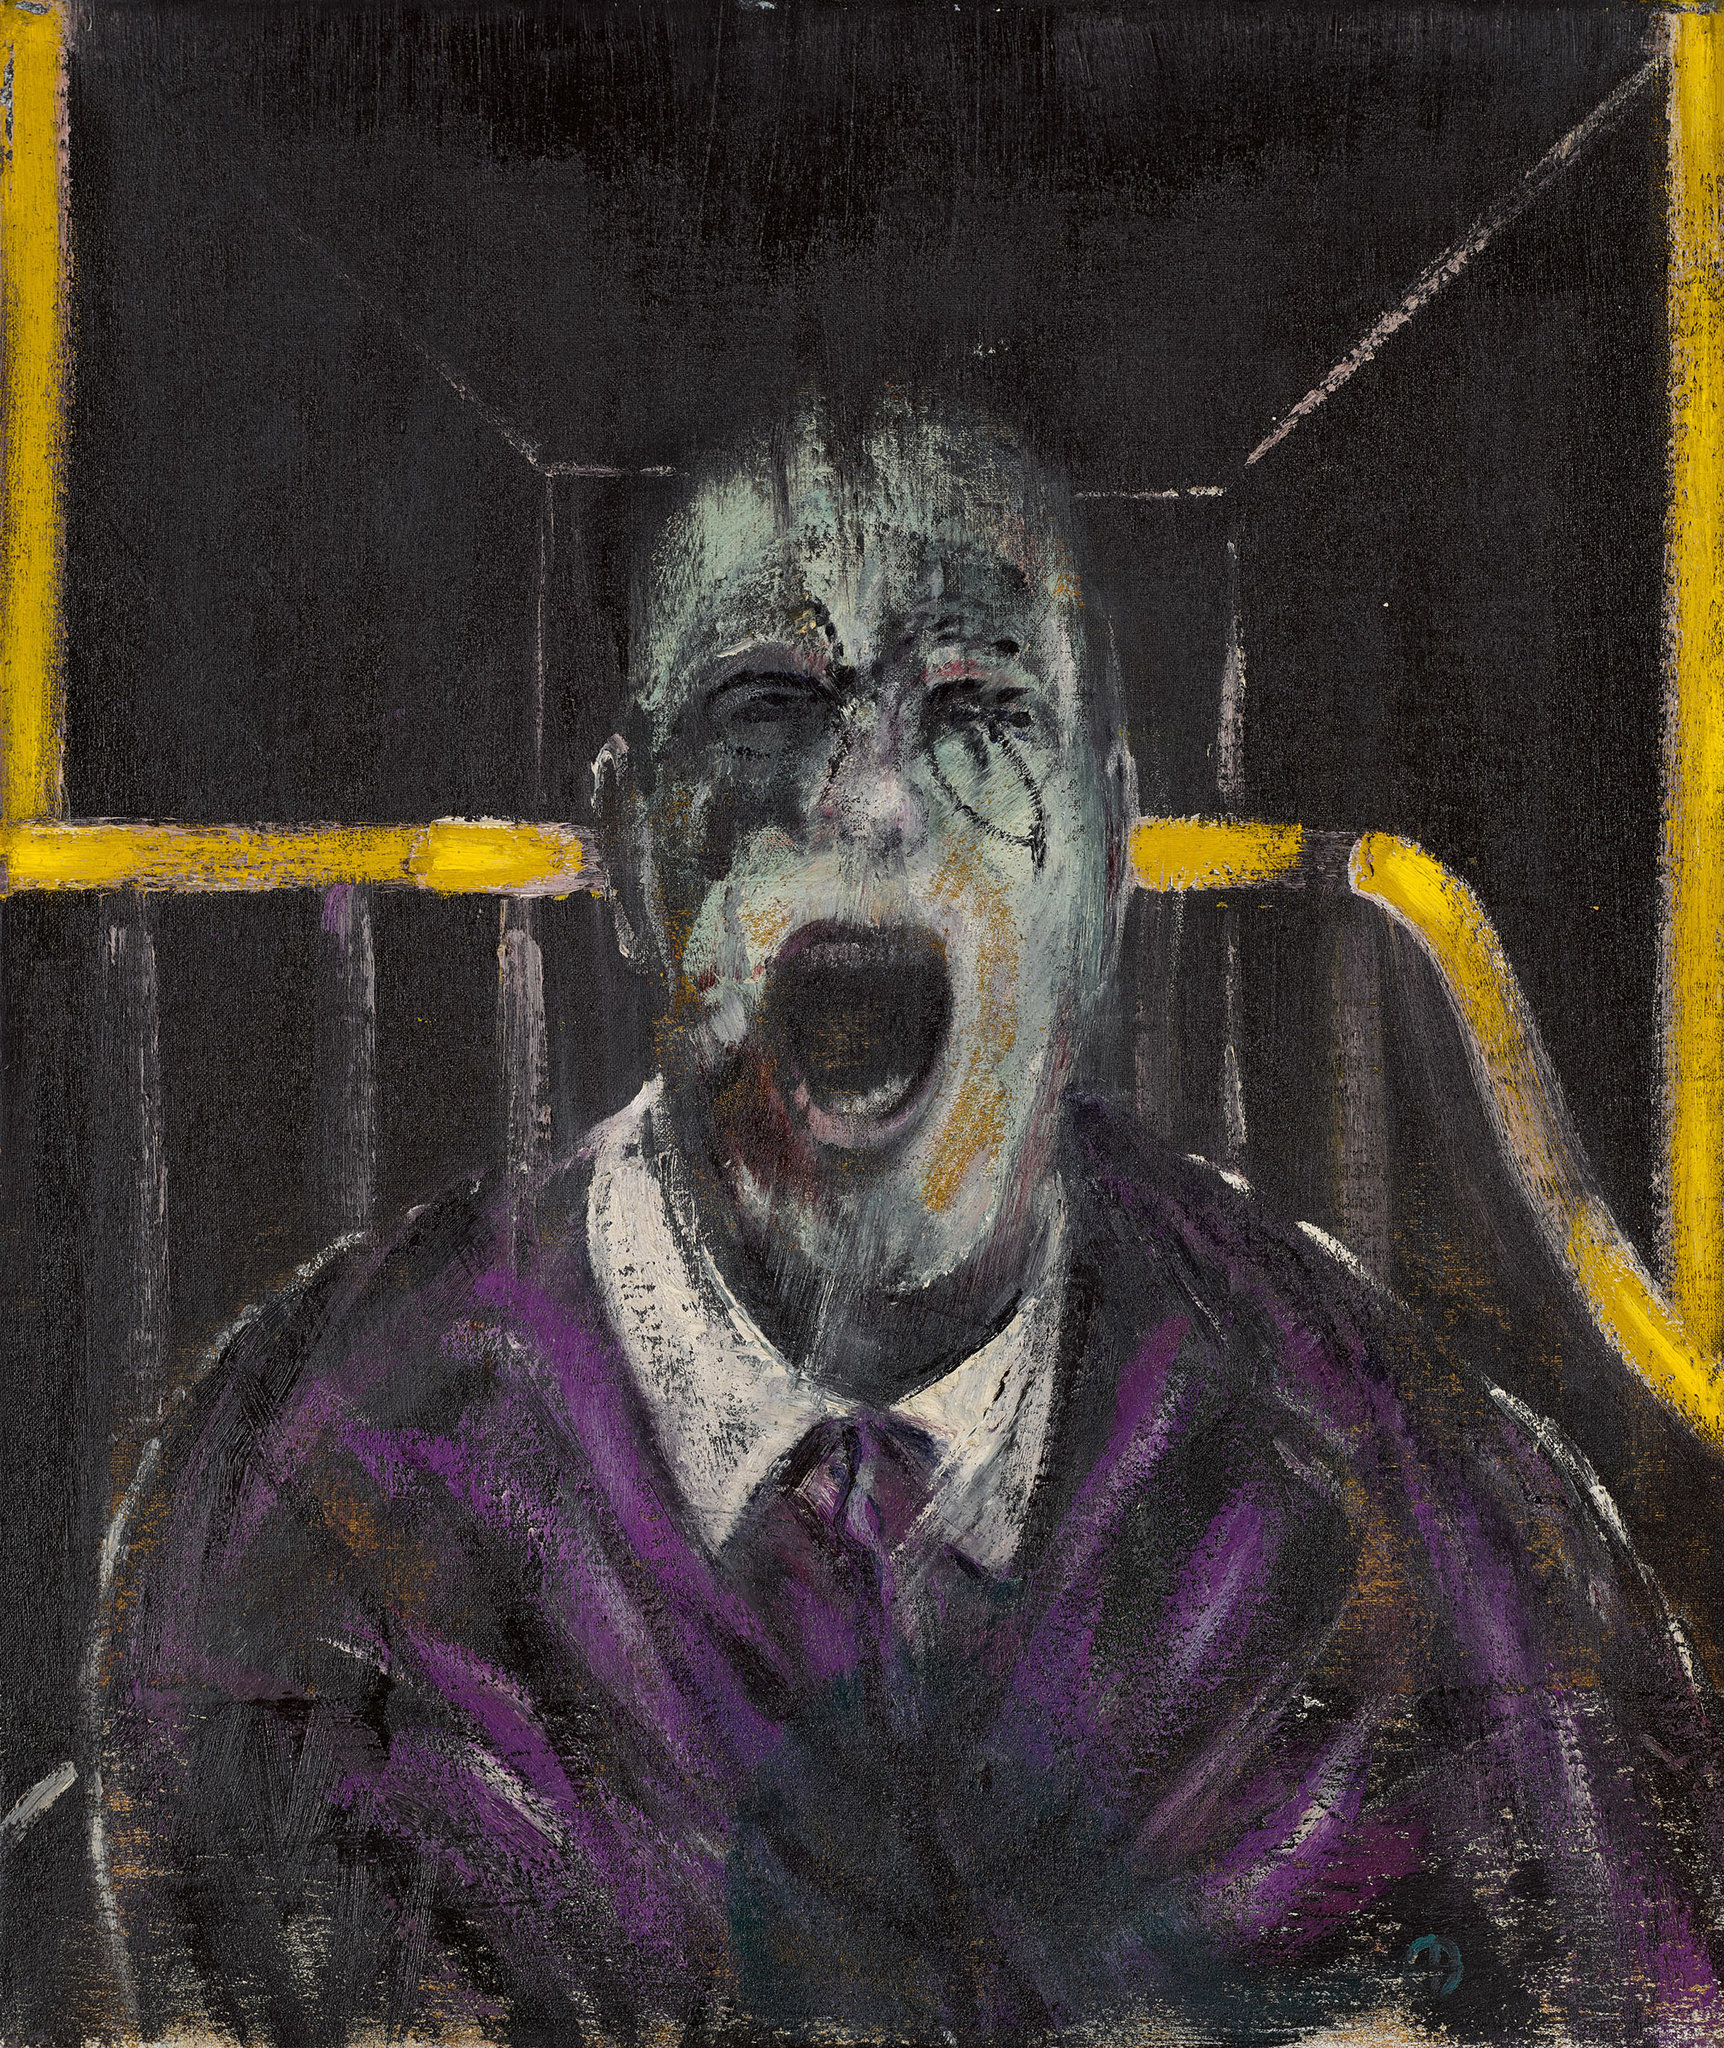 "Francis Bacon, ""Study for a Head"" (1952) sold for $50.4 at Sotheby's.CreditThe Estate of Francis Bacon; DACS, London/Artists Rights Society (ARS), New York; via Sotheby's"